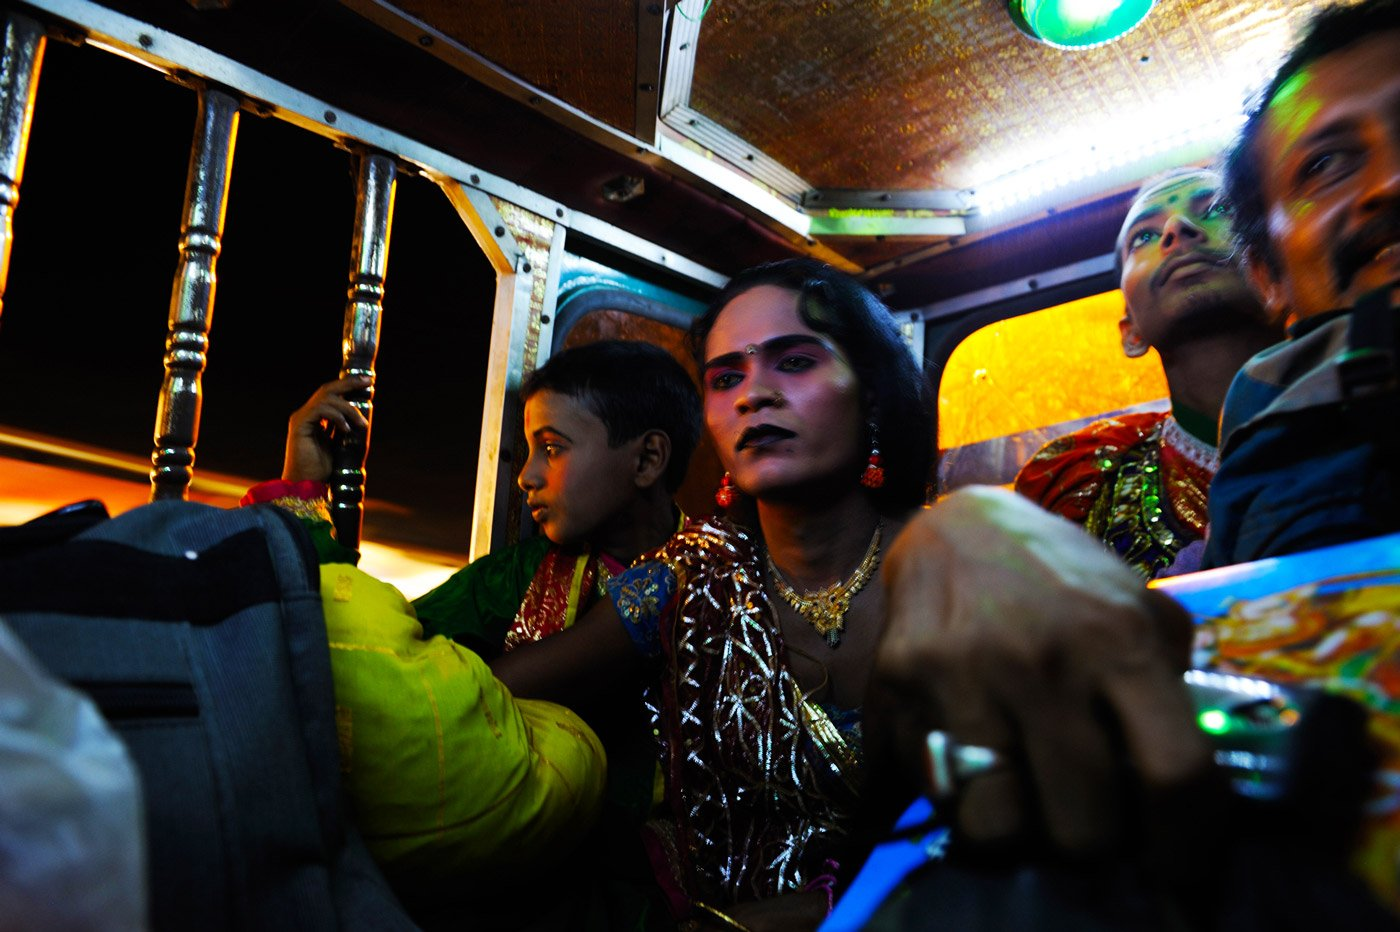 Actors sitting in autorickshaws.